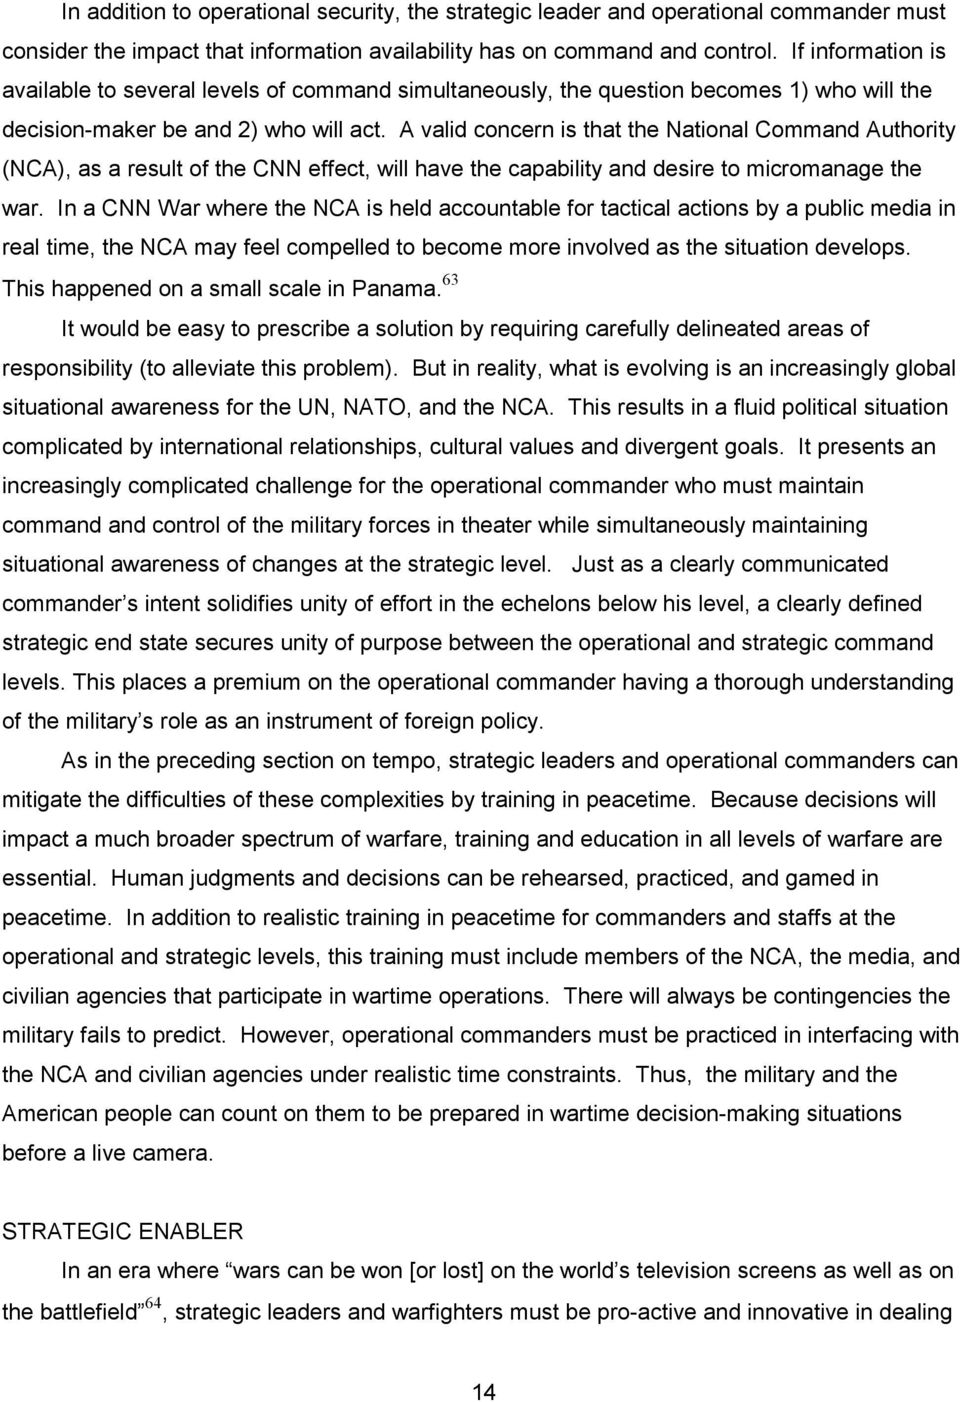 A valid concern is that the National Command Authority (NCA), as a result of the CNN effect, will have the capability and desire to micromanage the war.